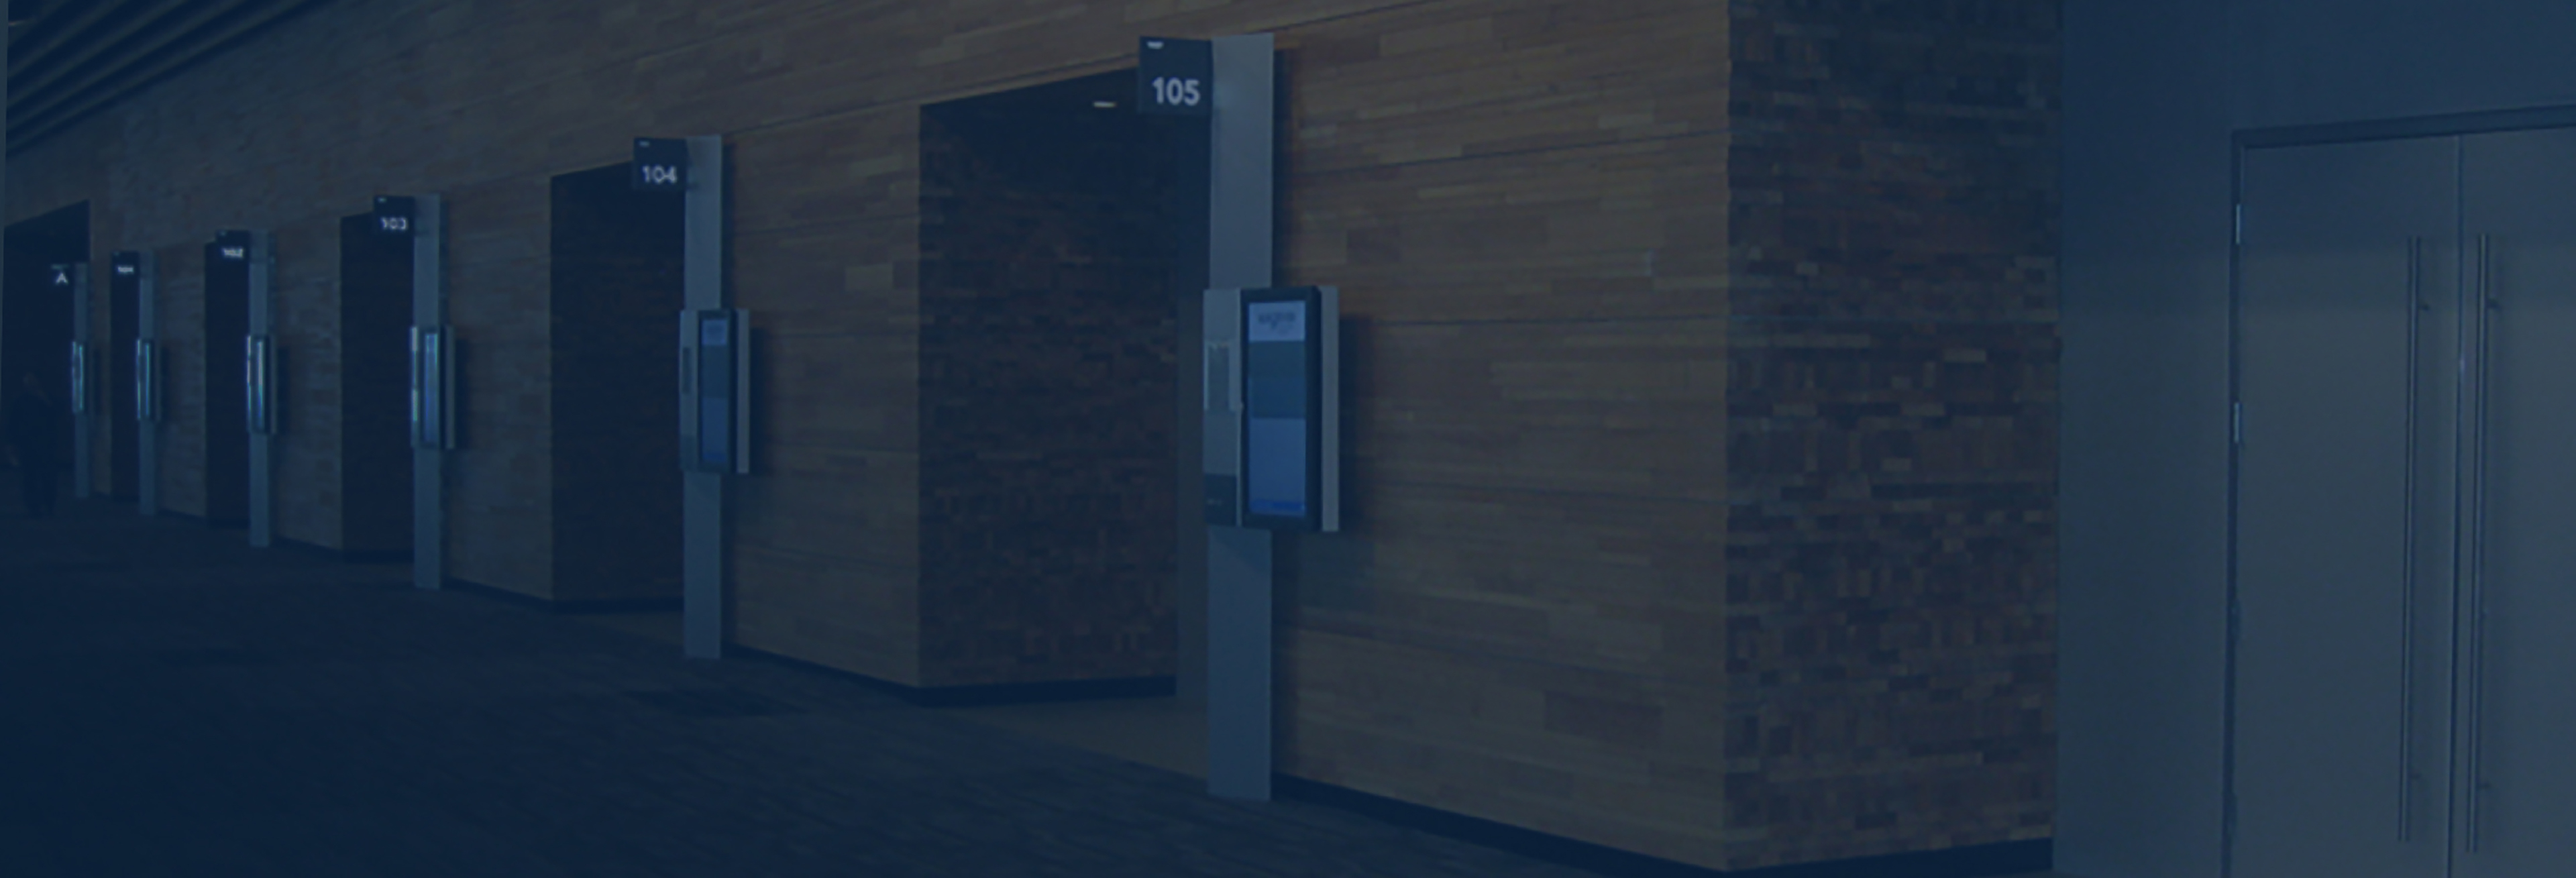 digital signage outside of meeting rooms